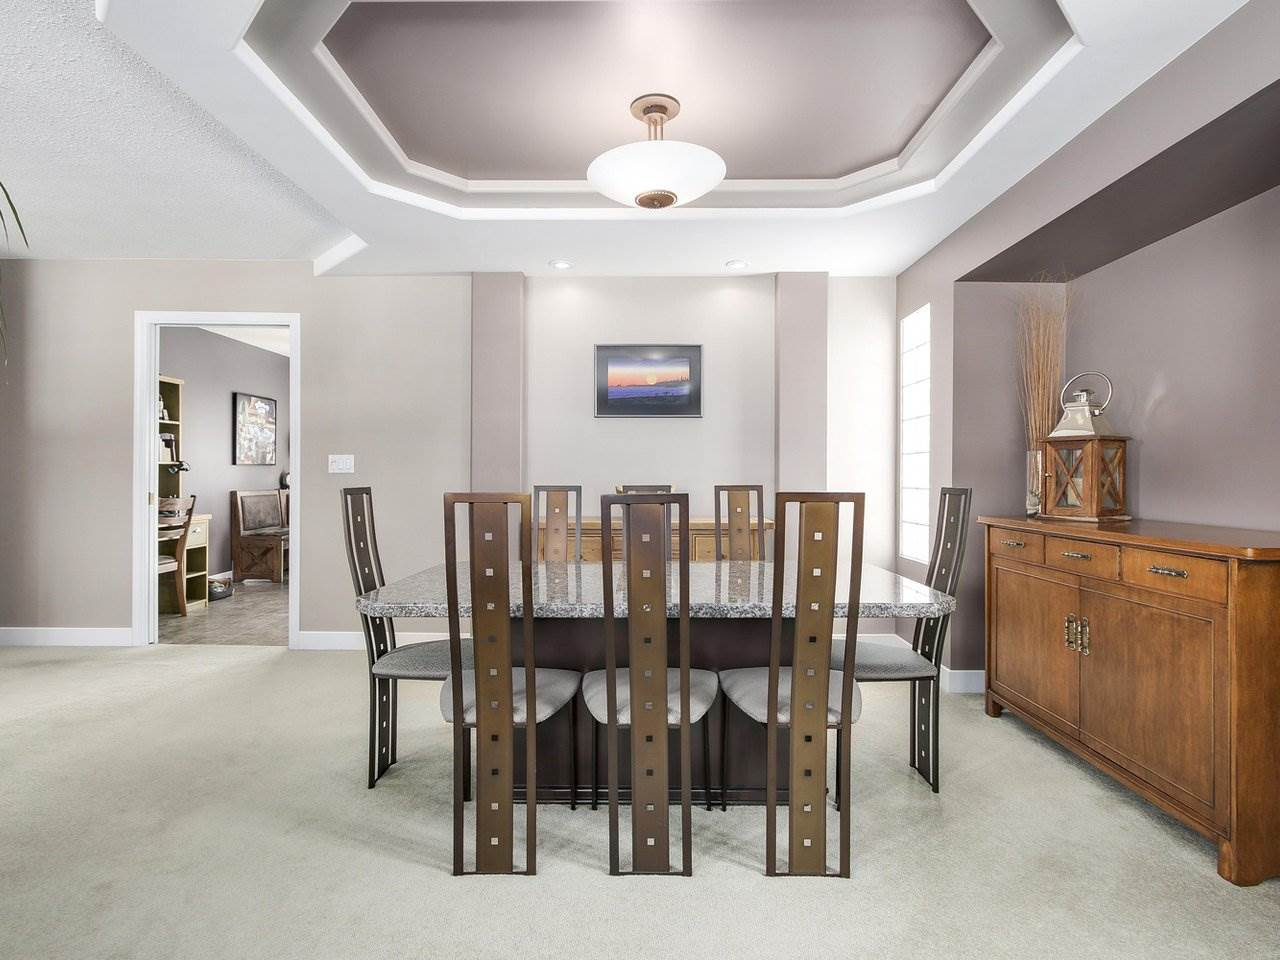 Nice ceiling detailing separates dining room and living room